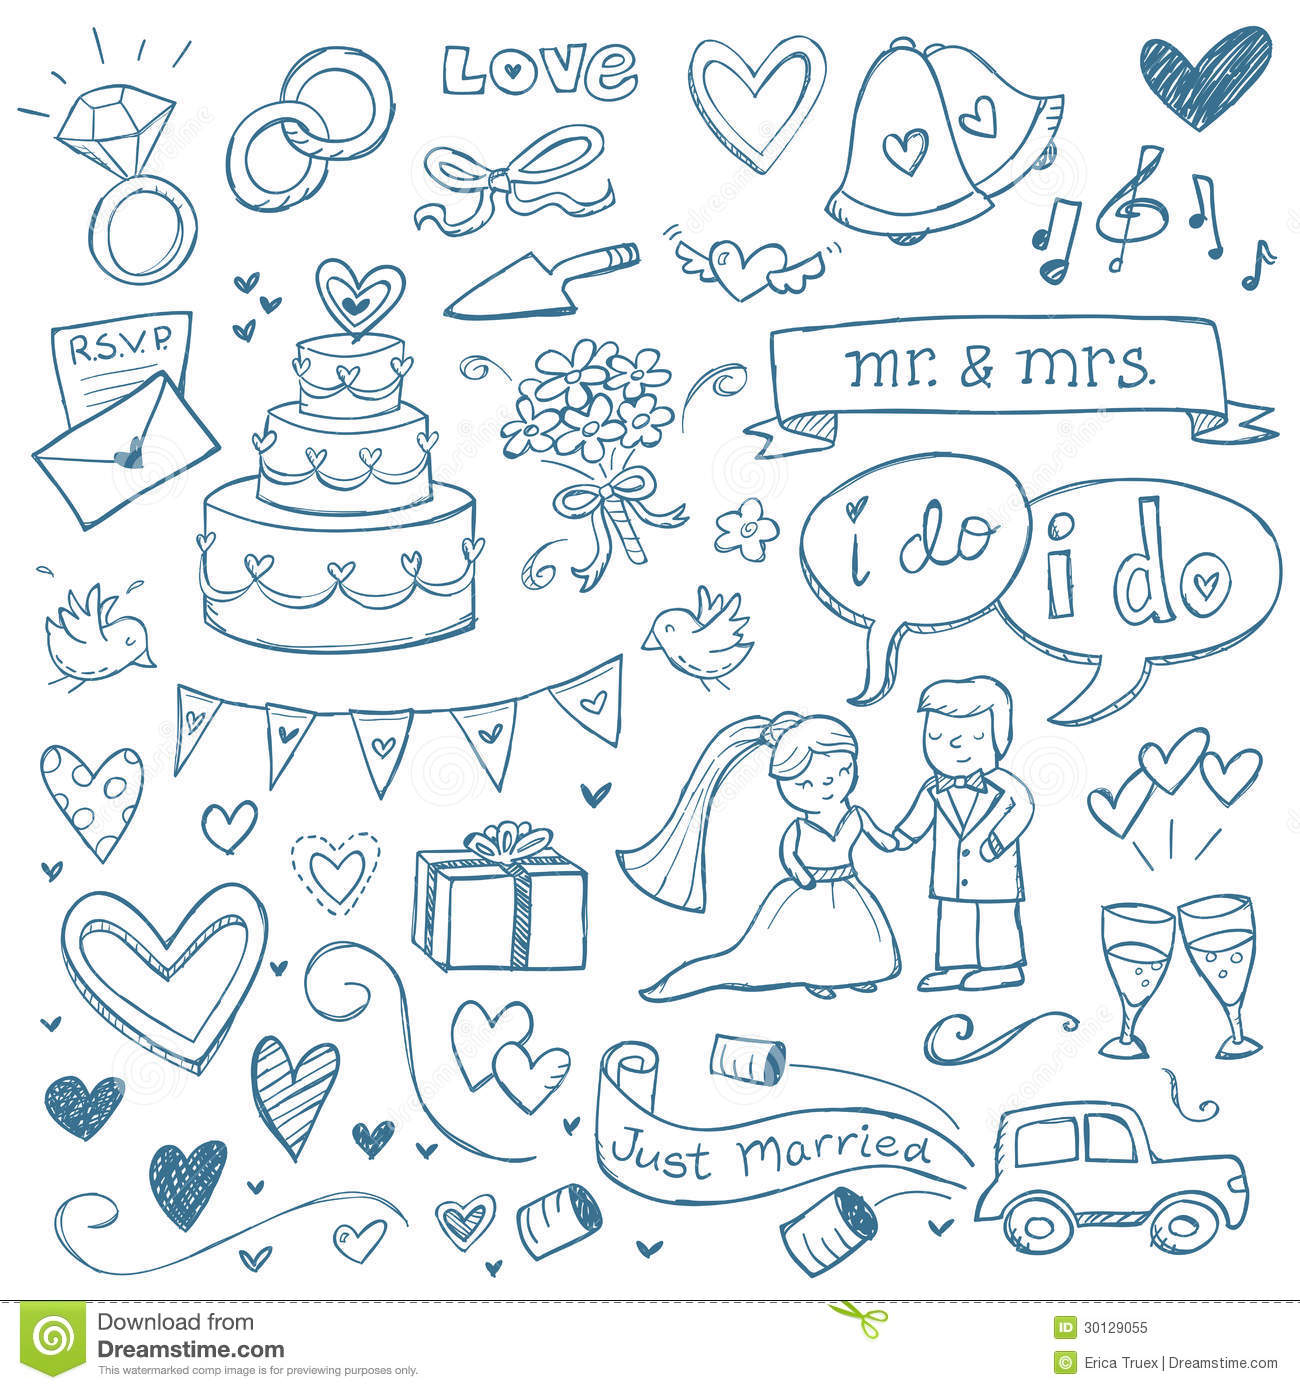 Wedding Doodles Royalty Free Stock Photo Image 30129055